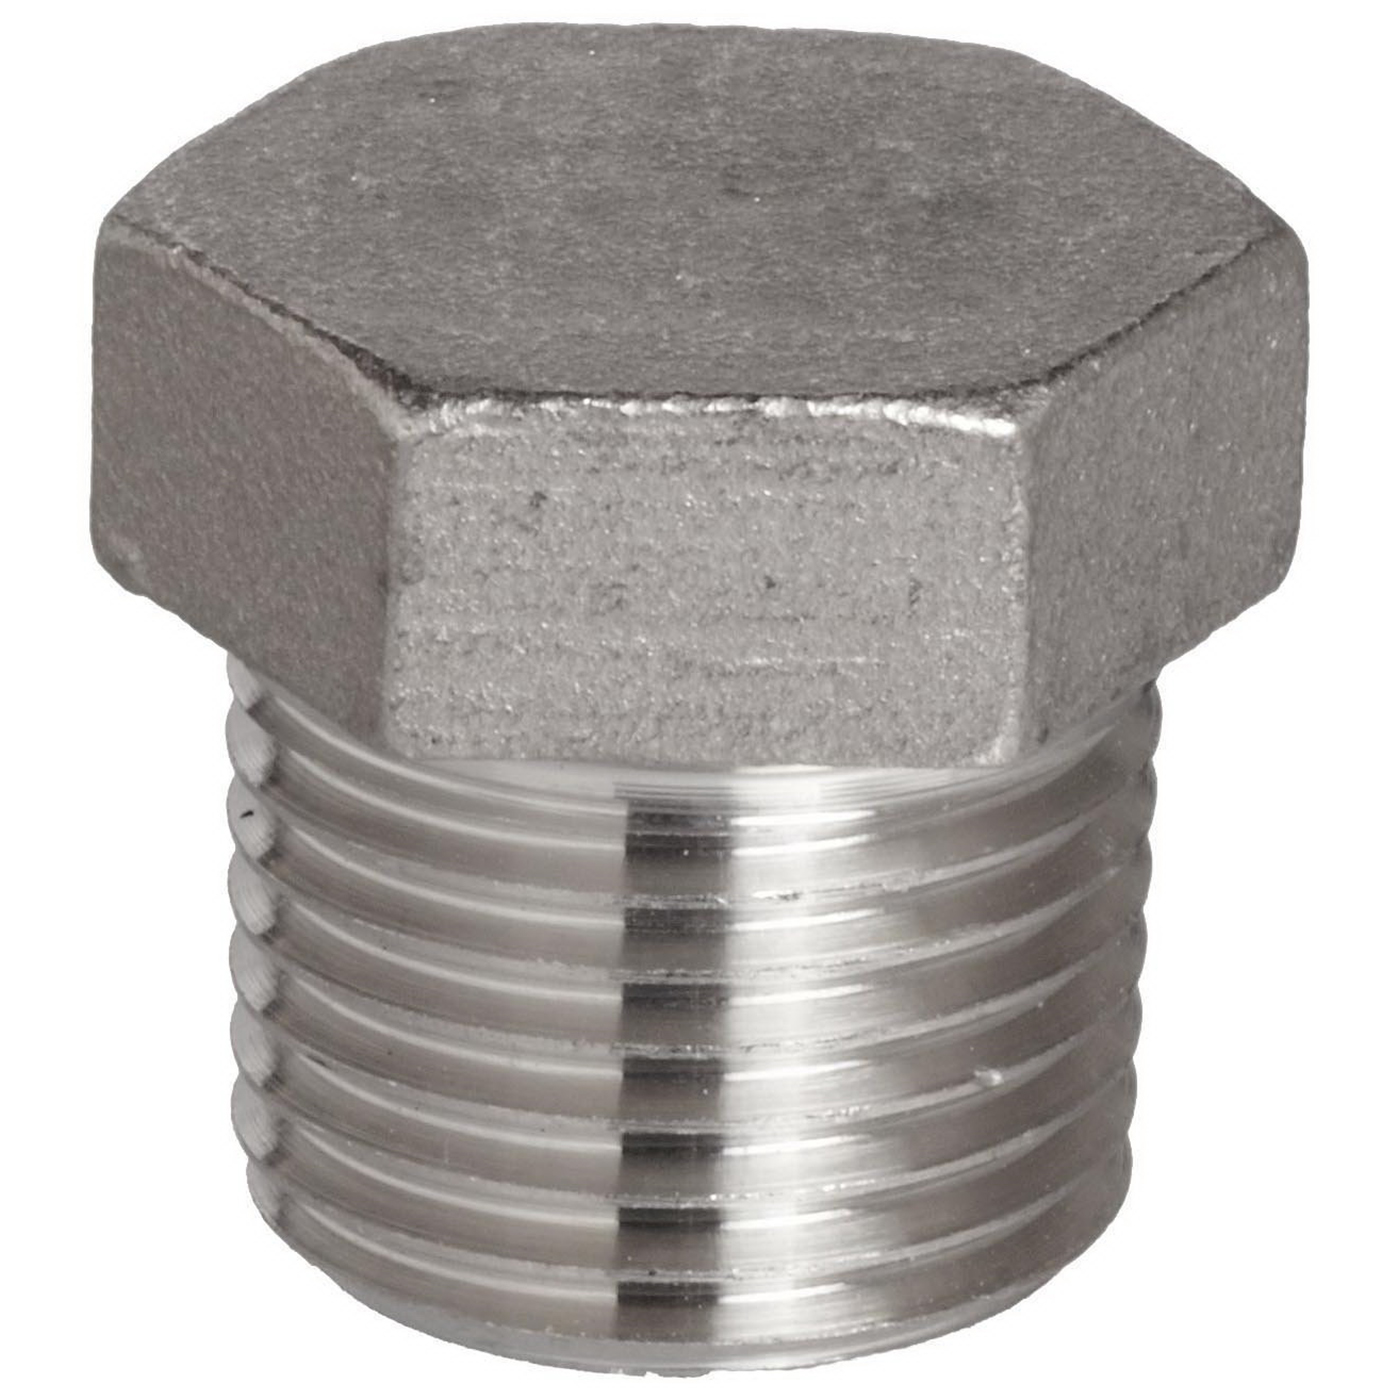 316L Stainless Steel Class 3000 Hex Head Plug, 3/4 in, Import